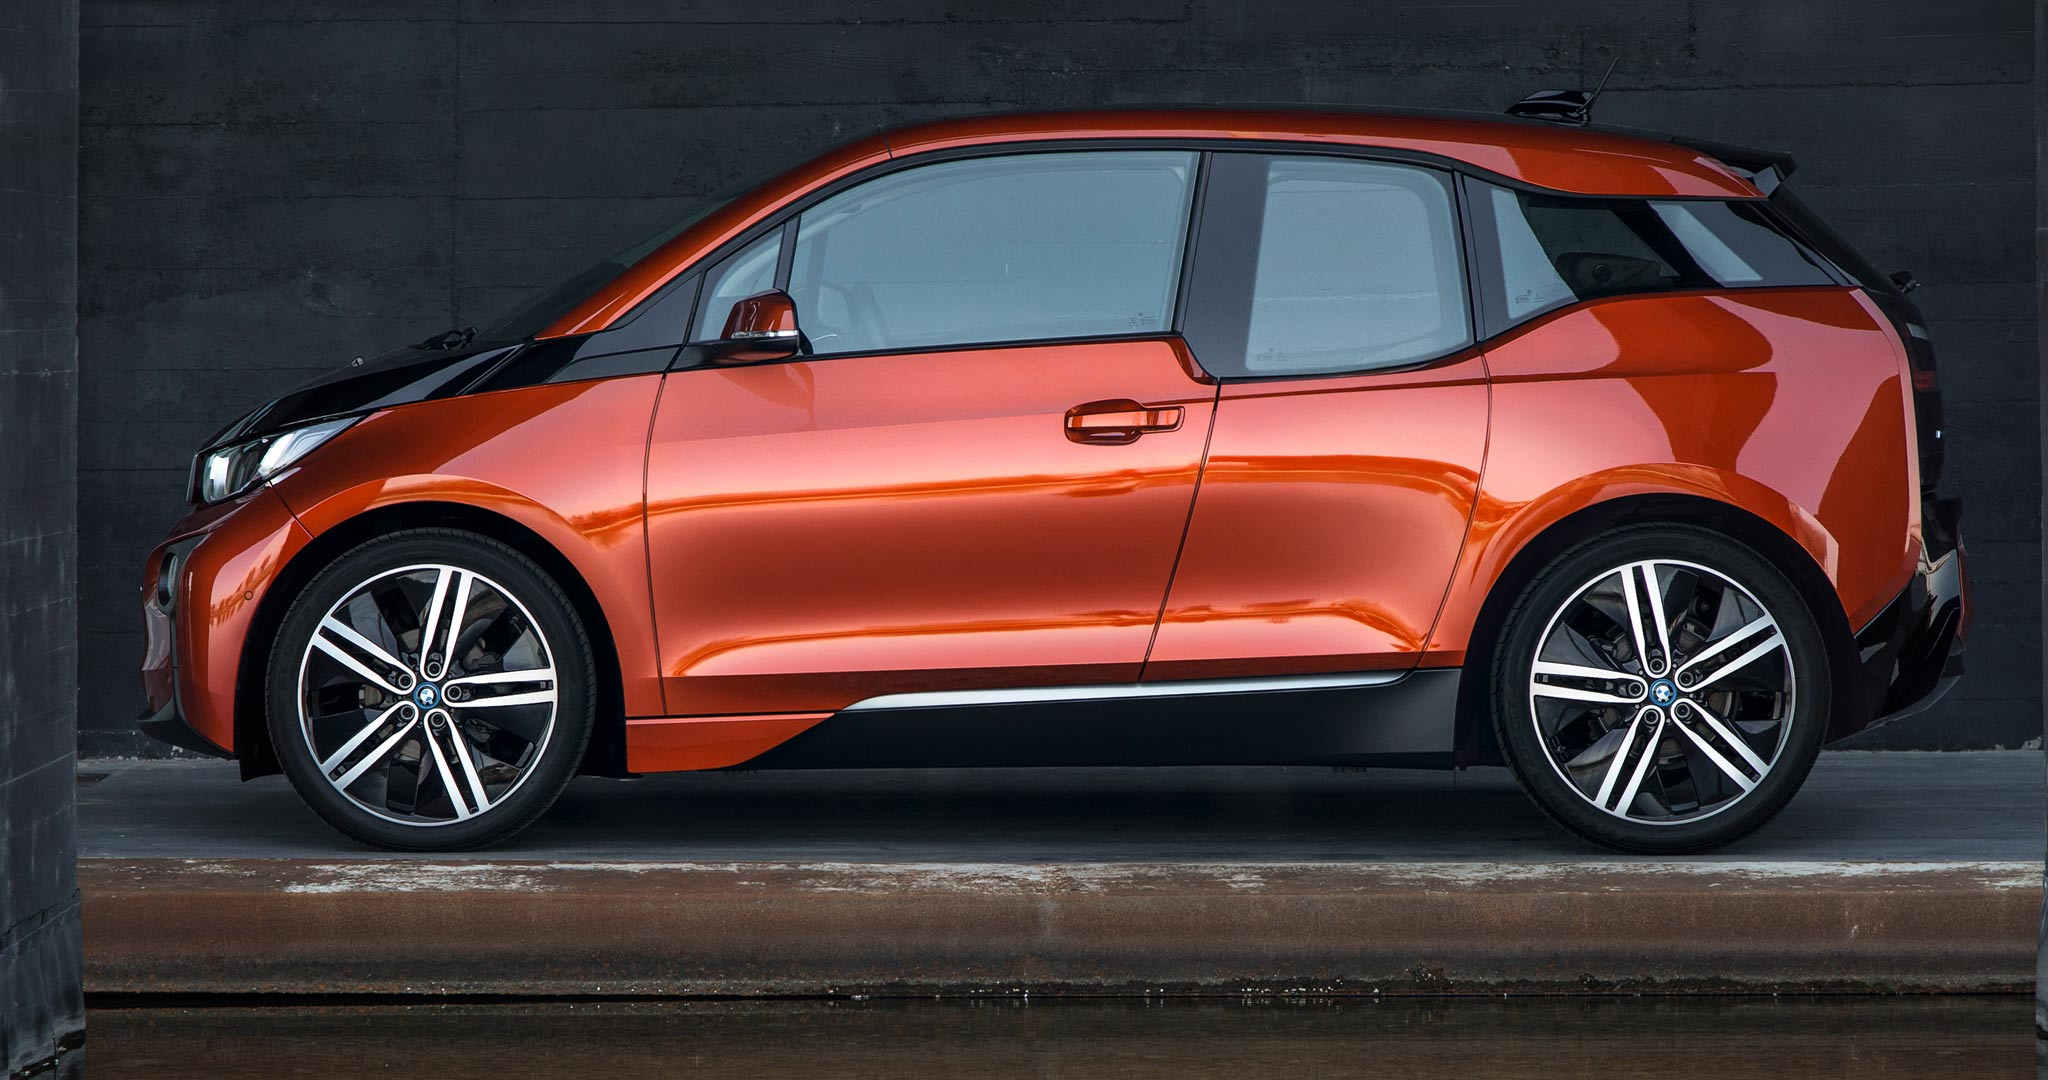 2014 BMW i3 side view static in orange